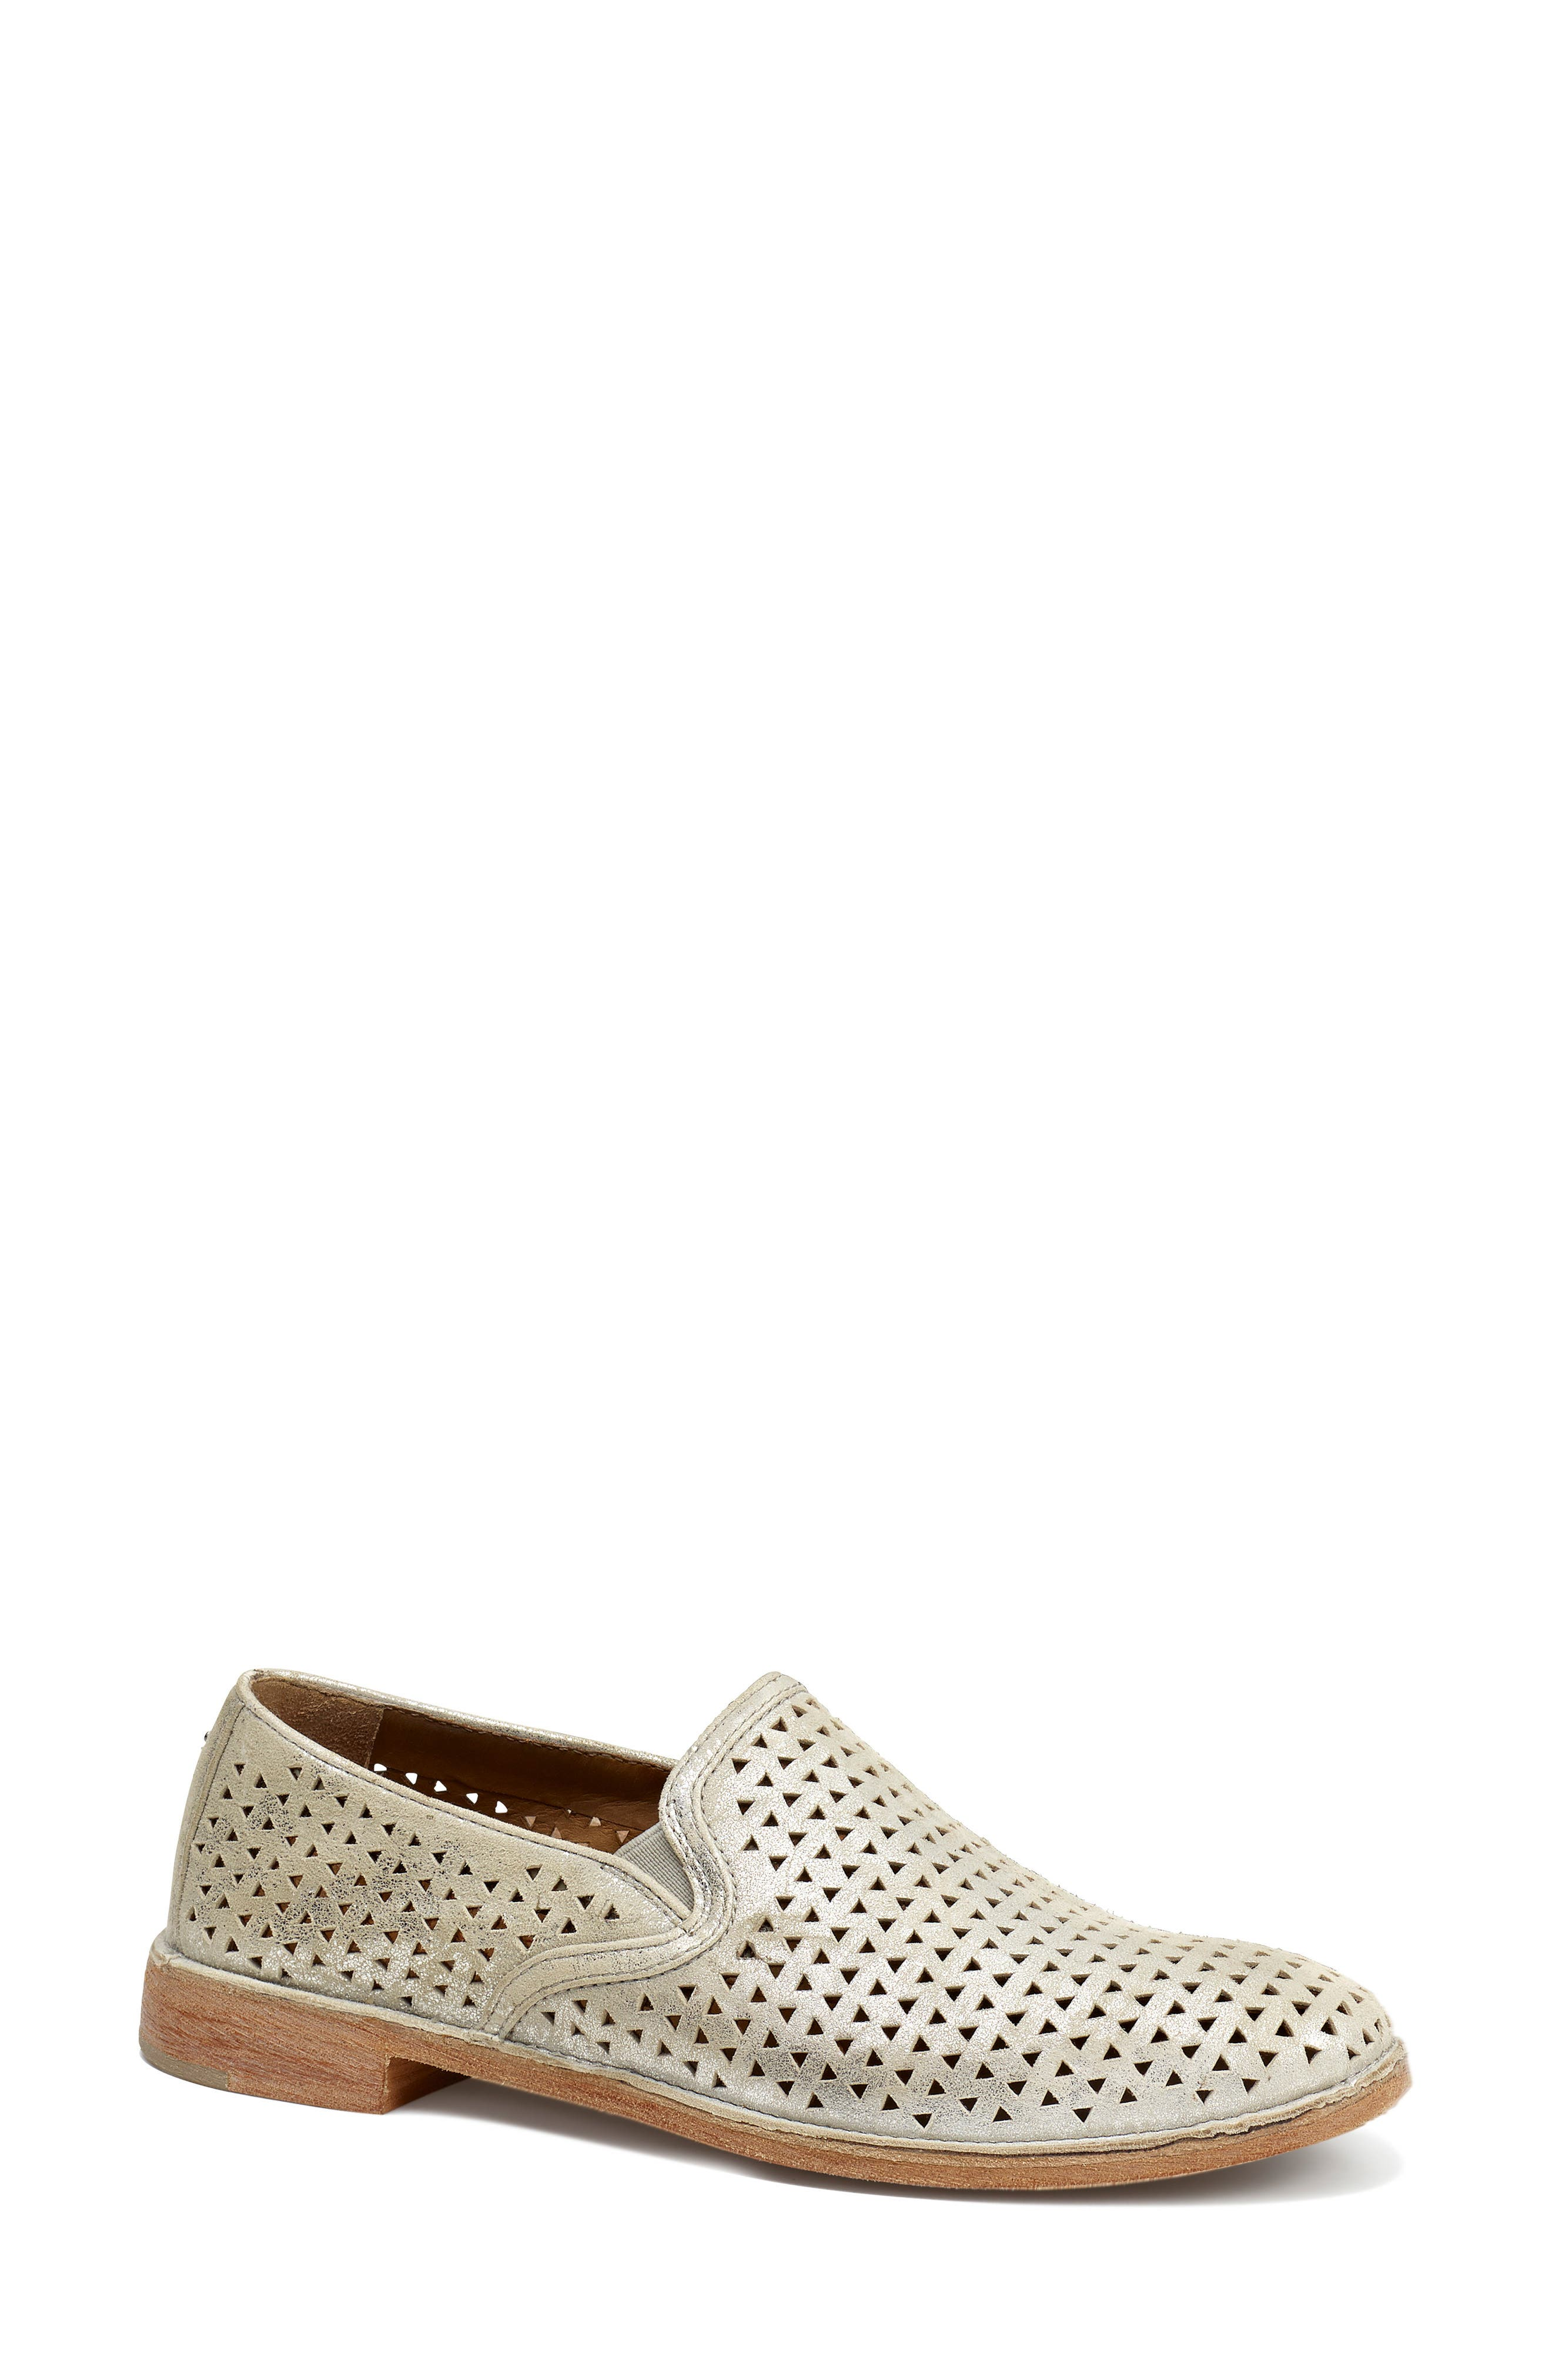 Trask Ali Perforated Loafer, Metallic